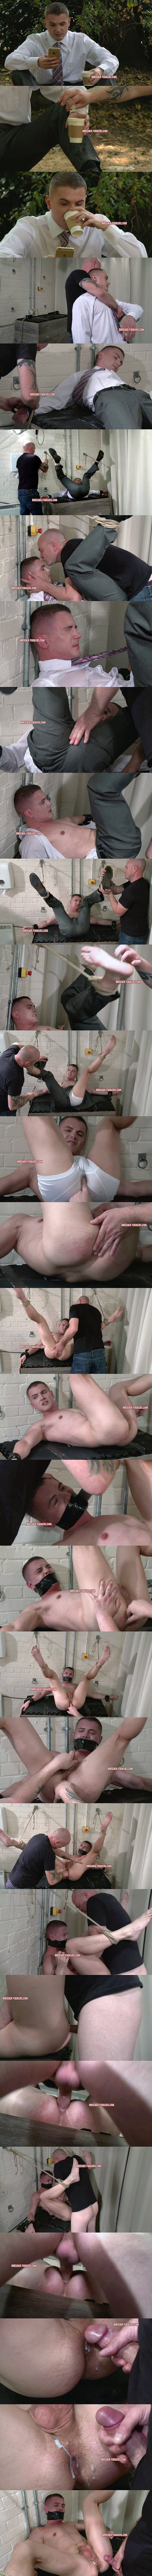 Straight jock Austin gets suit shredded, gagged, sphincter stretched, verbal humiliated, fucked, ass covered in cum by master Dave at Breederfuckers 01